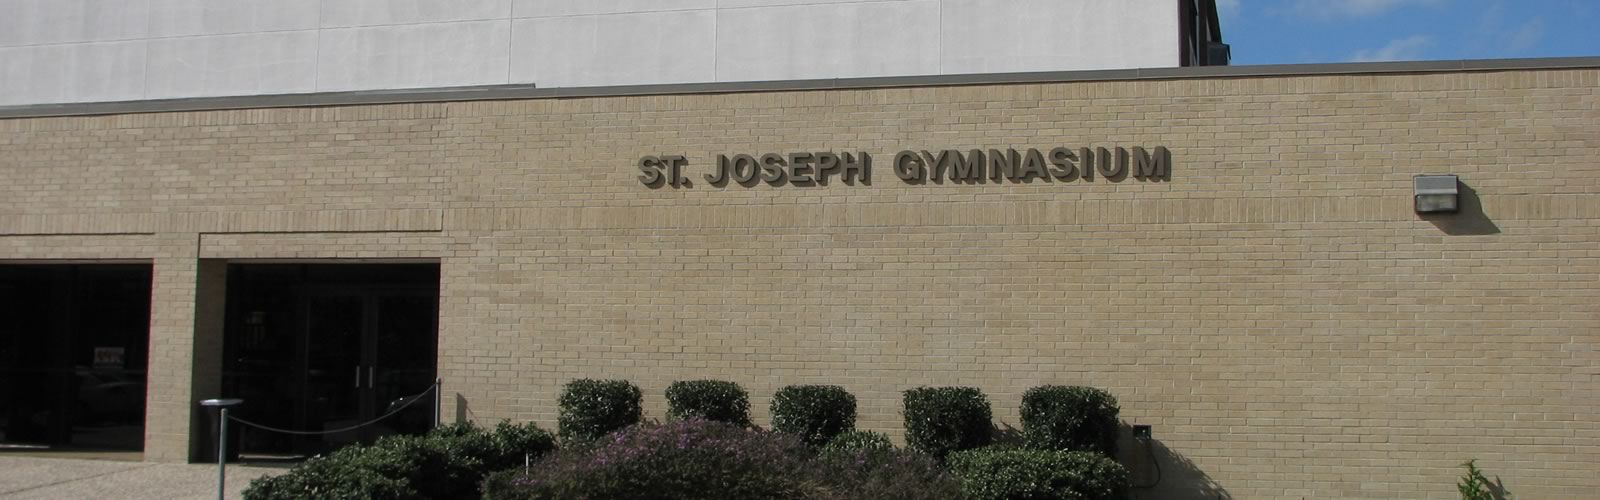 Contractor for the St Josesph Gymnasium in Victoria Texas